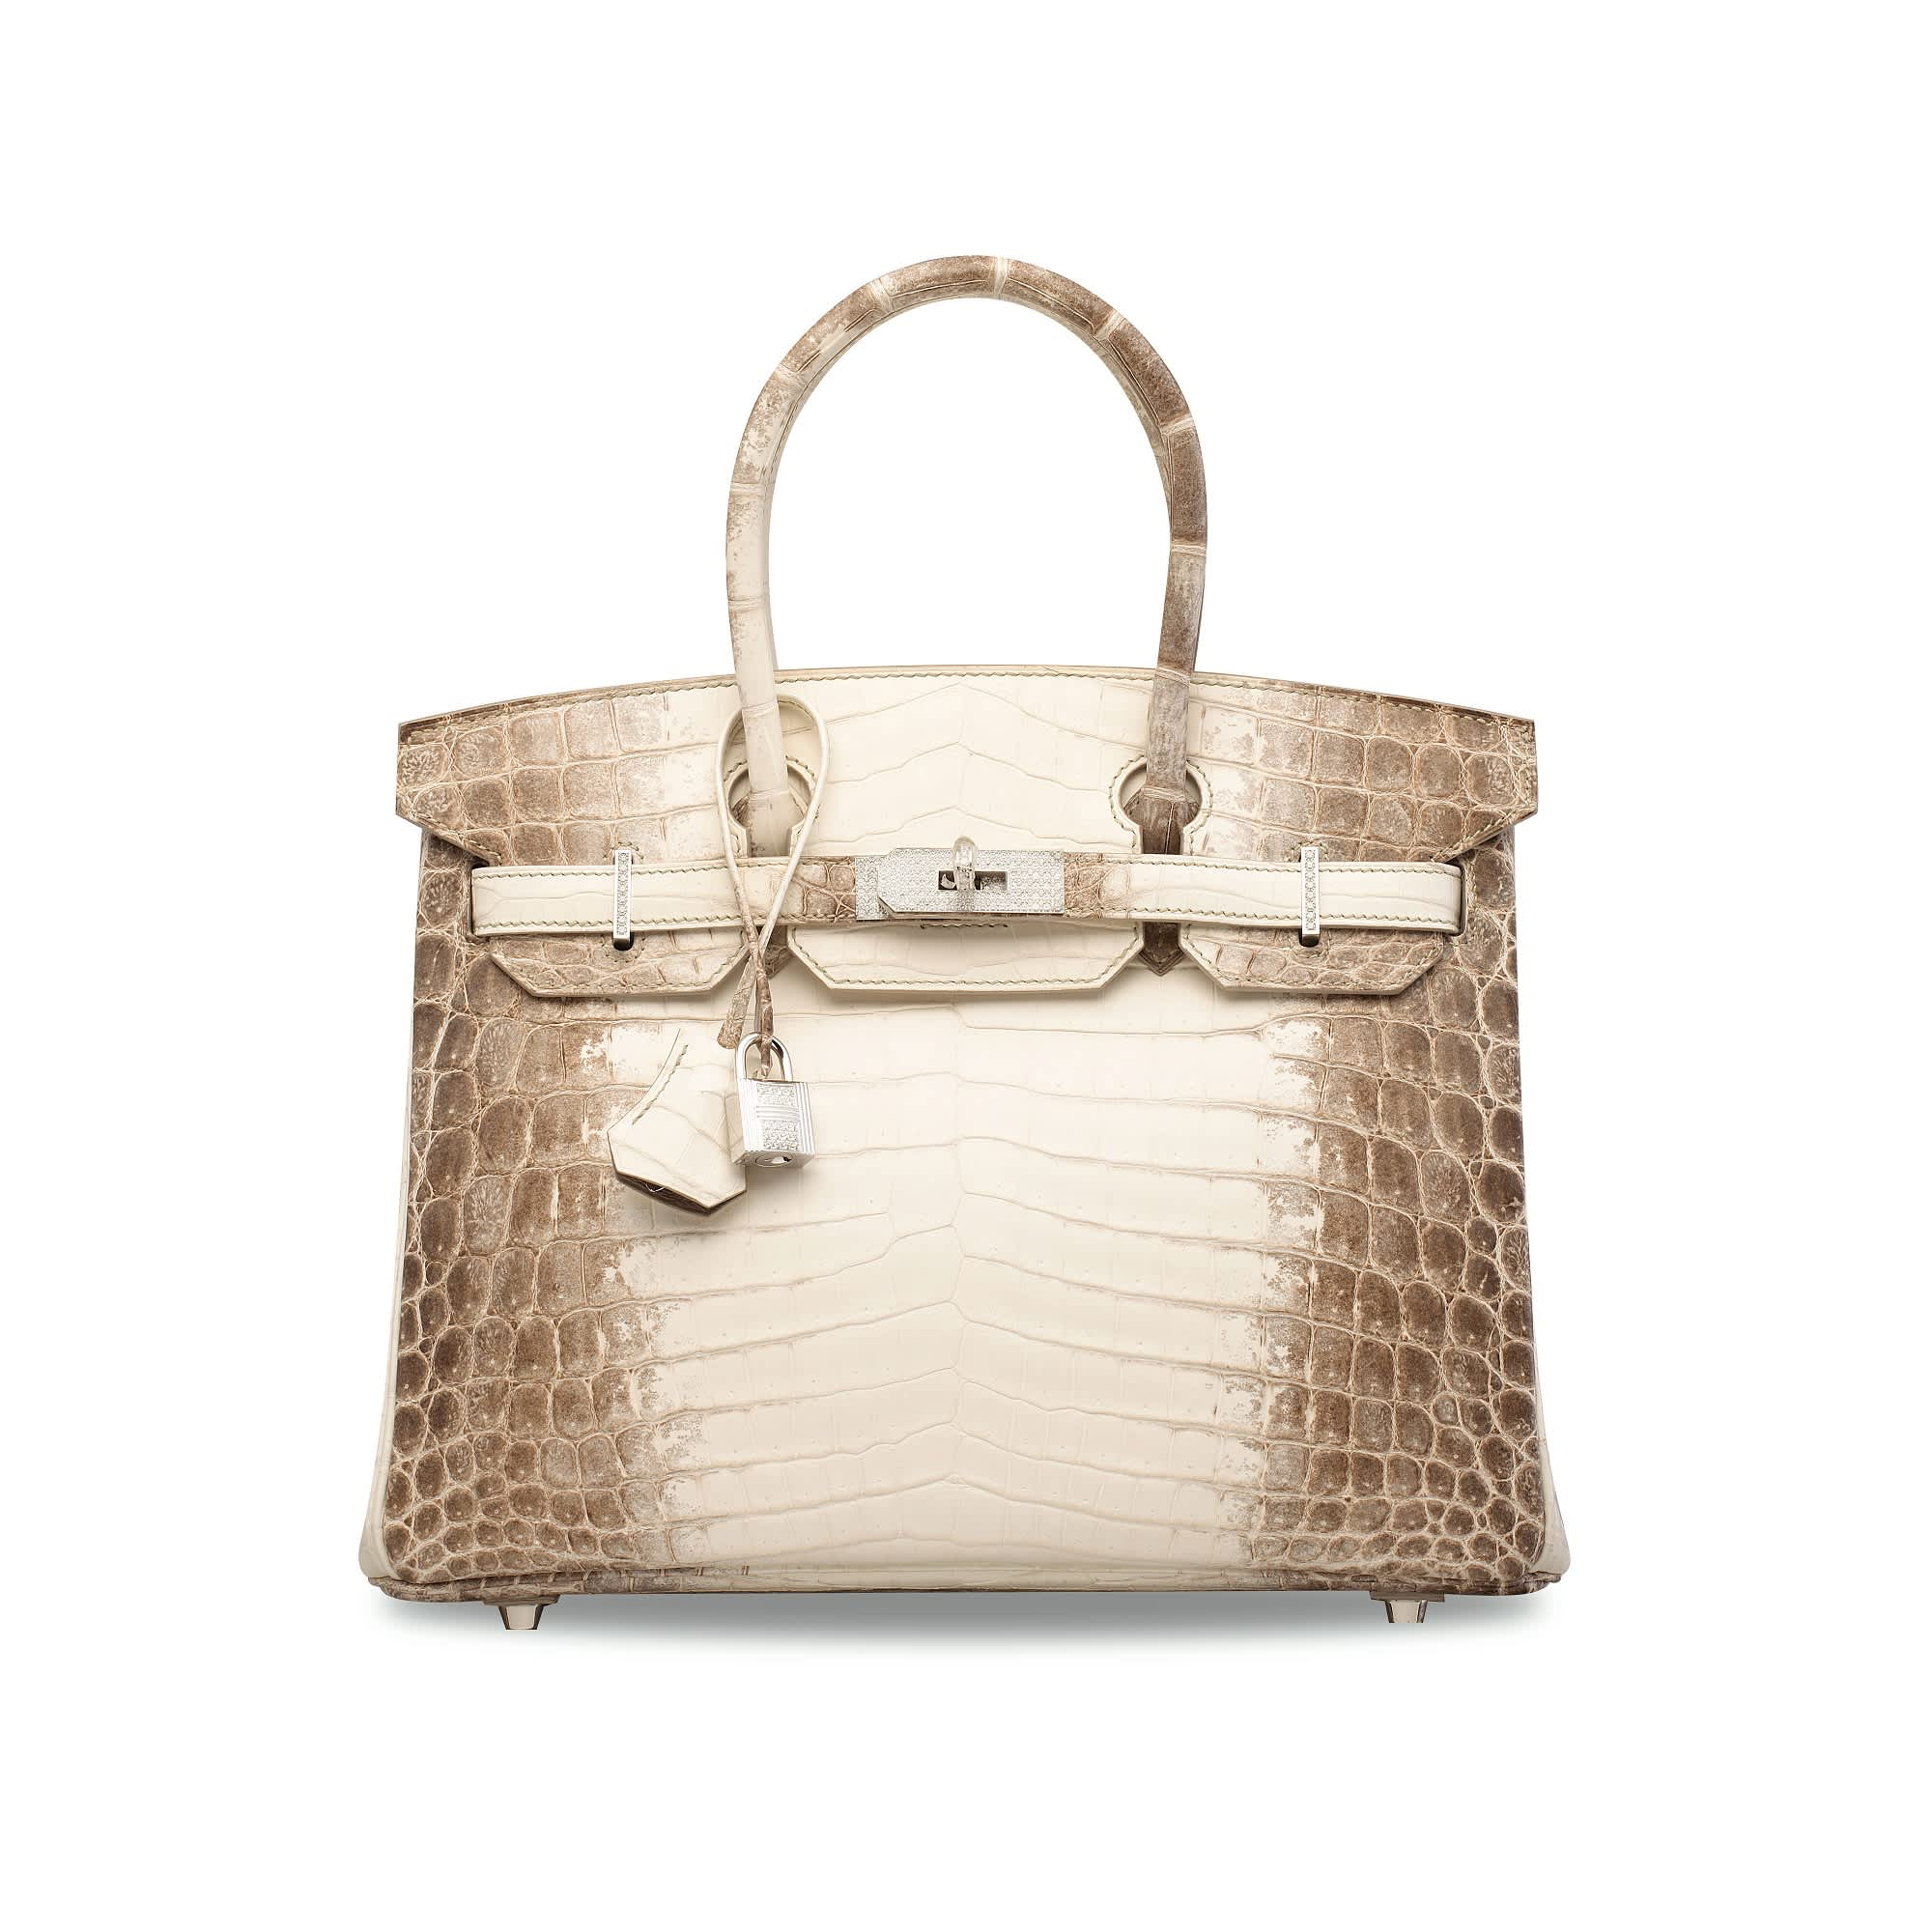 df2df8625c7a32 This $379,261 Hermes Birkin handbag is the most expensive ever sold